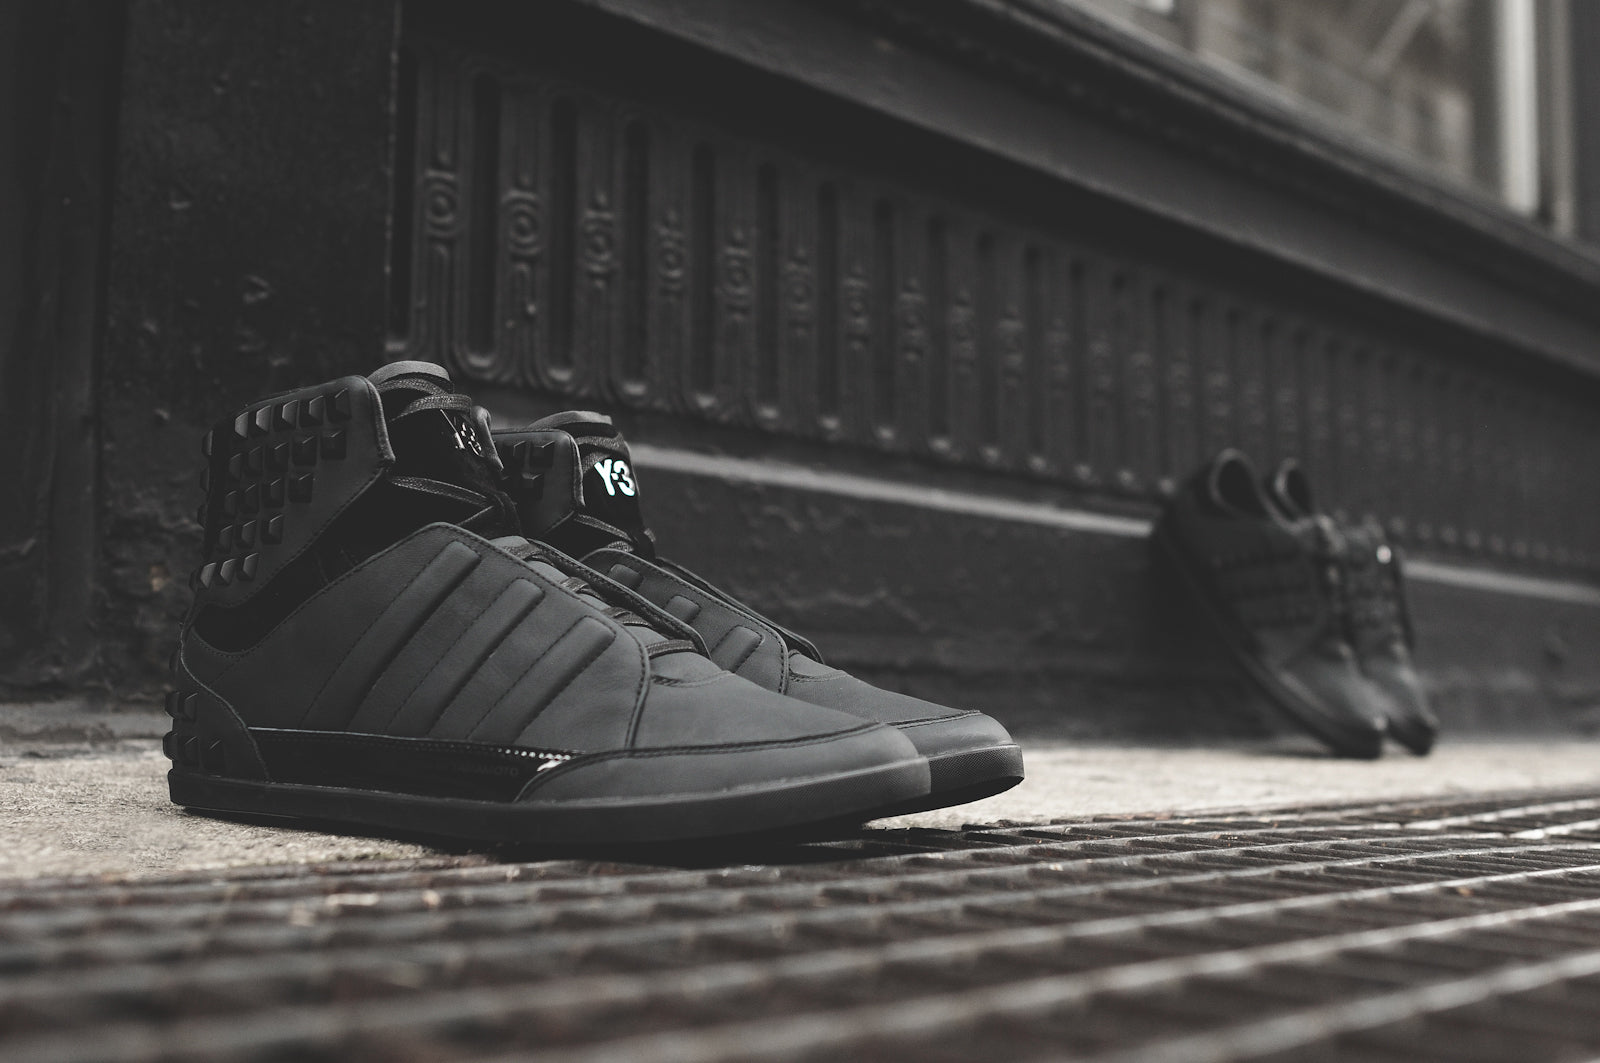 c4103b8e0 Y-3 HONJA HI   LOW - TRIPLE BLACK   KITH NYC – Kith